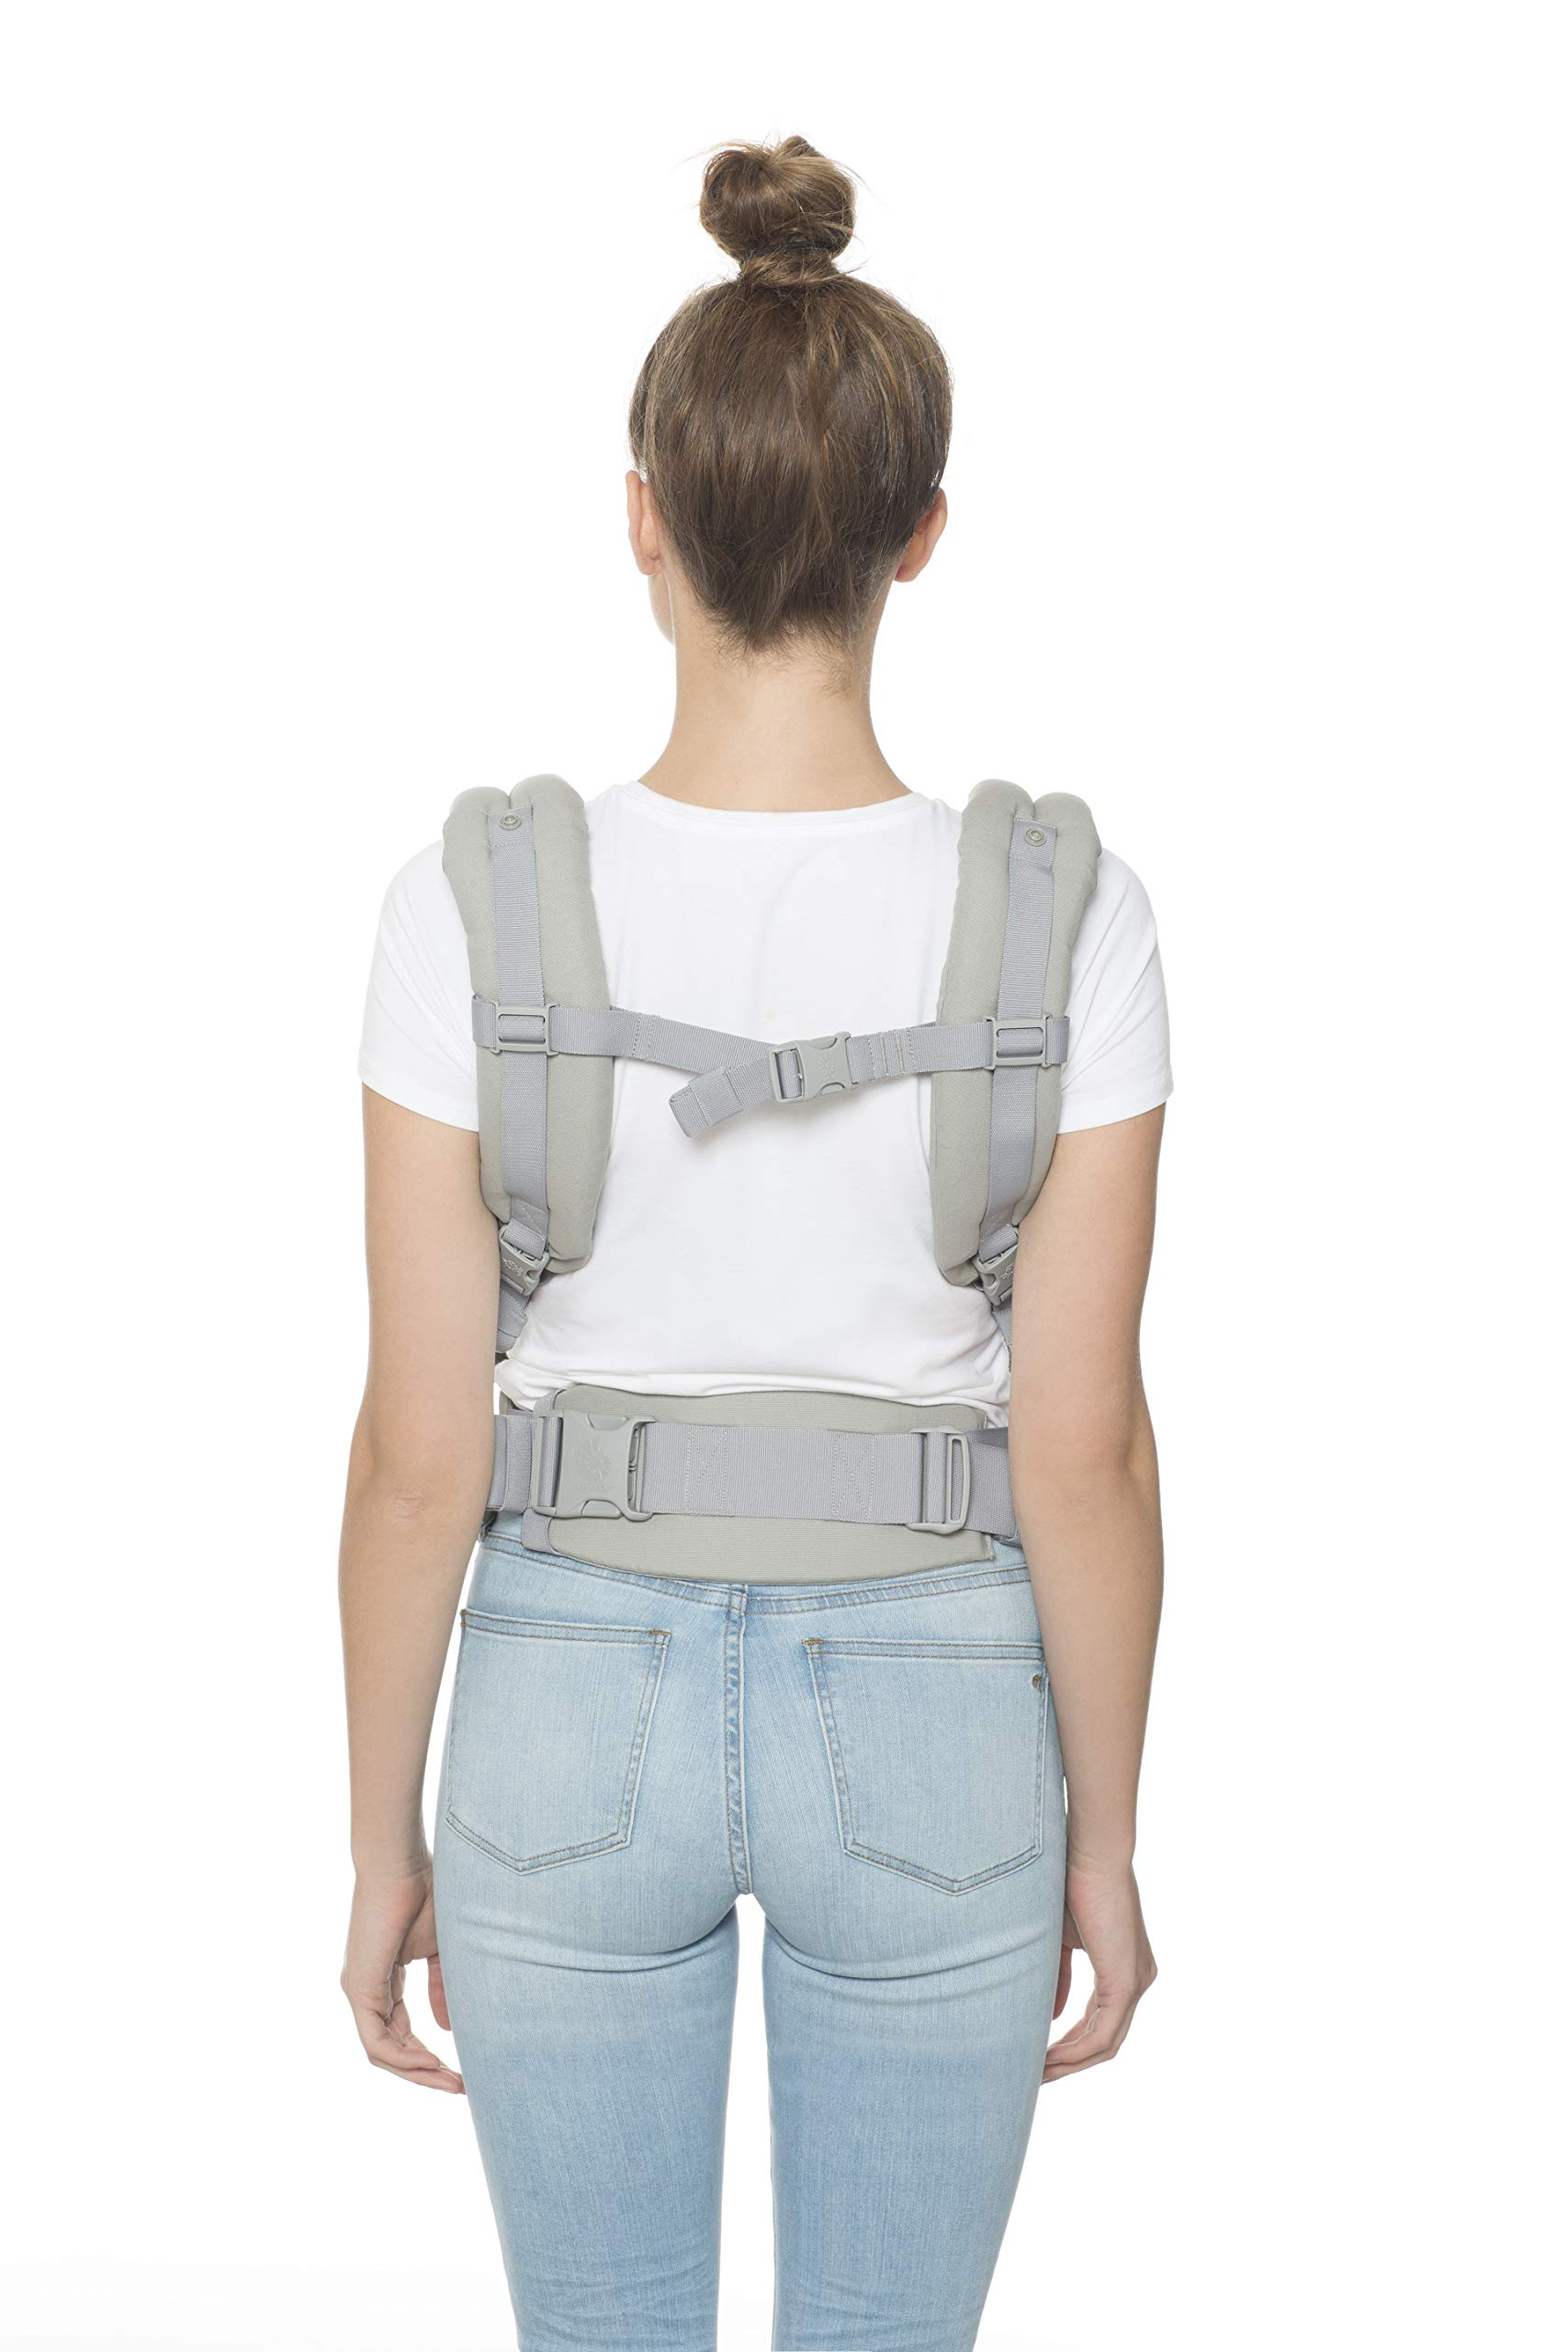 "Ergobaby Front and Back Original Baby Carrier, Pearl Grey Ergobaby Ergonomic baby carrier - ergonomic for baby with wide deep seat for a spread-squat, natural ""m"" seated position. Baby carrying system with 3 carry positions:  front-inward, hip and back. from baby to toddler: 5.5*-20 kg Maximum wearing comfort - lumbar support waist belt (adjustable from 66-140 cm / 26-52 in) that can be adjusted to the height of the carry position. 10"